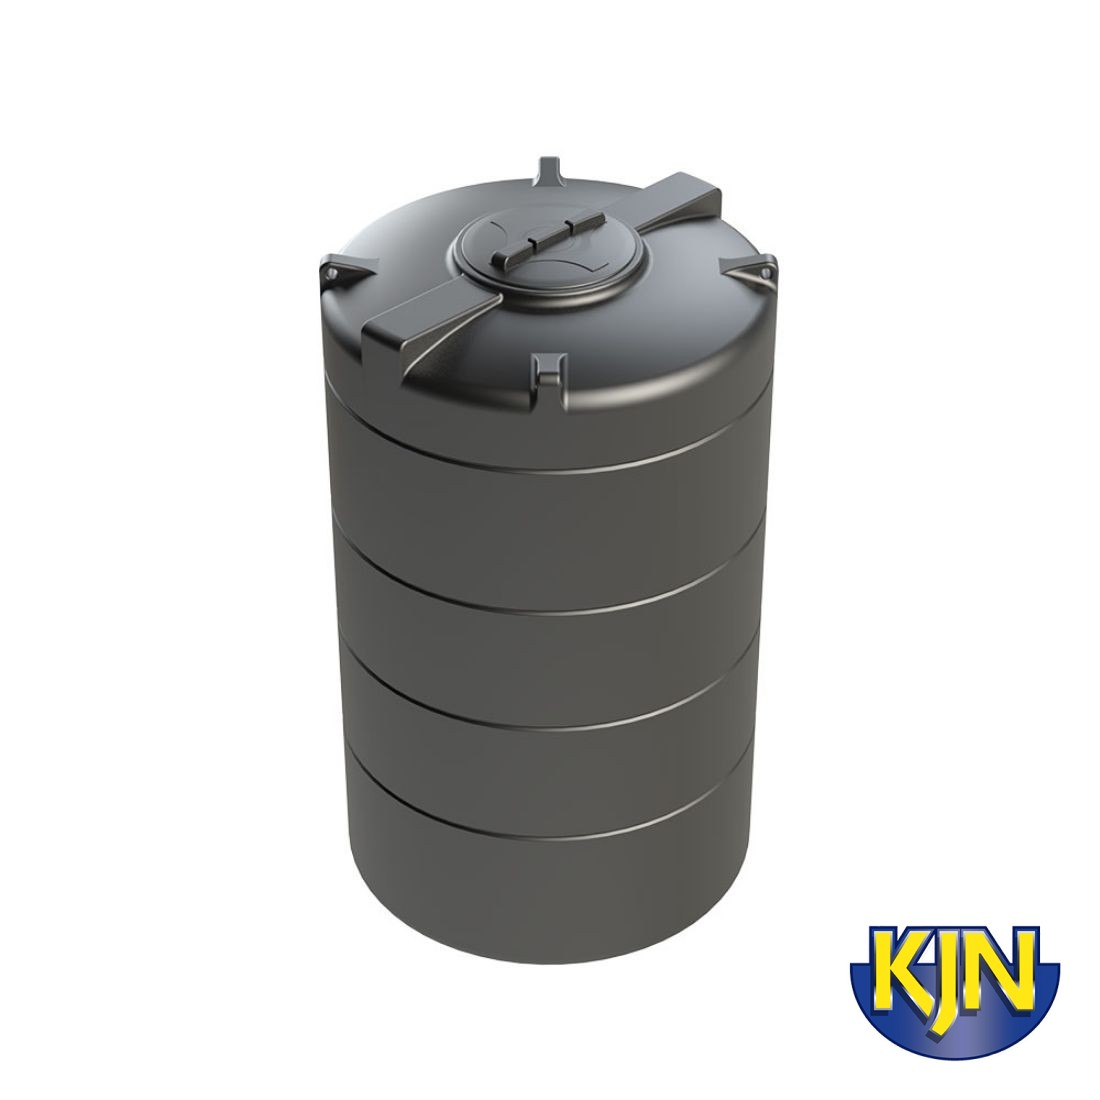 Enduramaxx 2,000 Litre Vertical Non-Potable Water Storage Tank